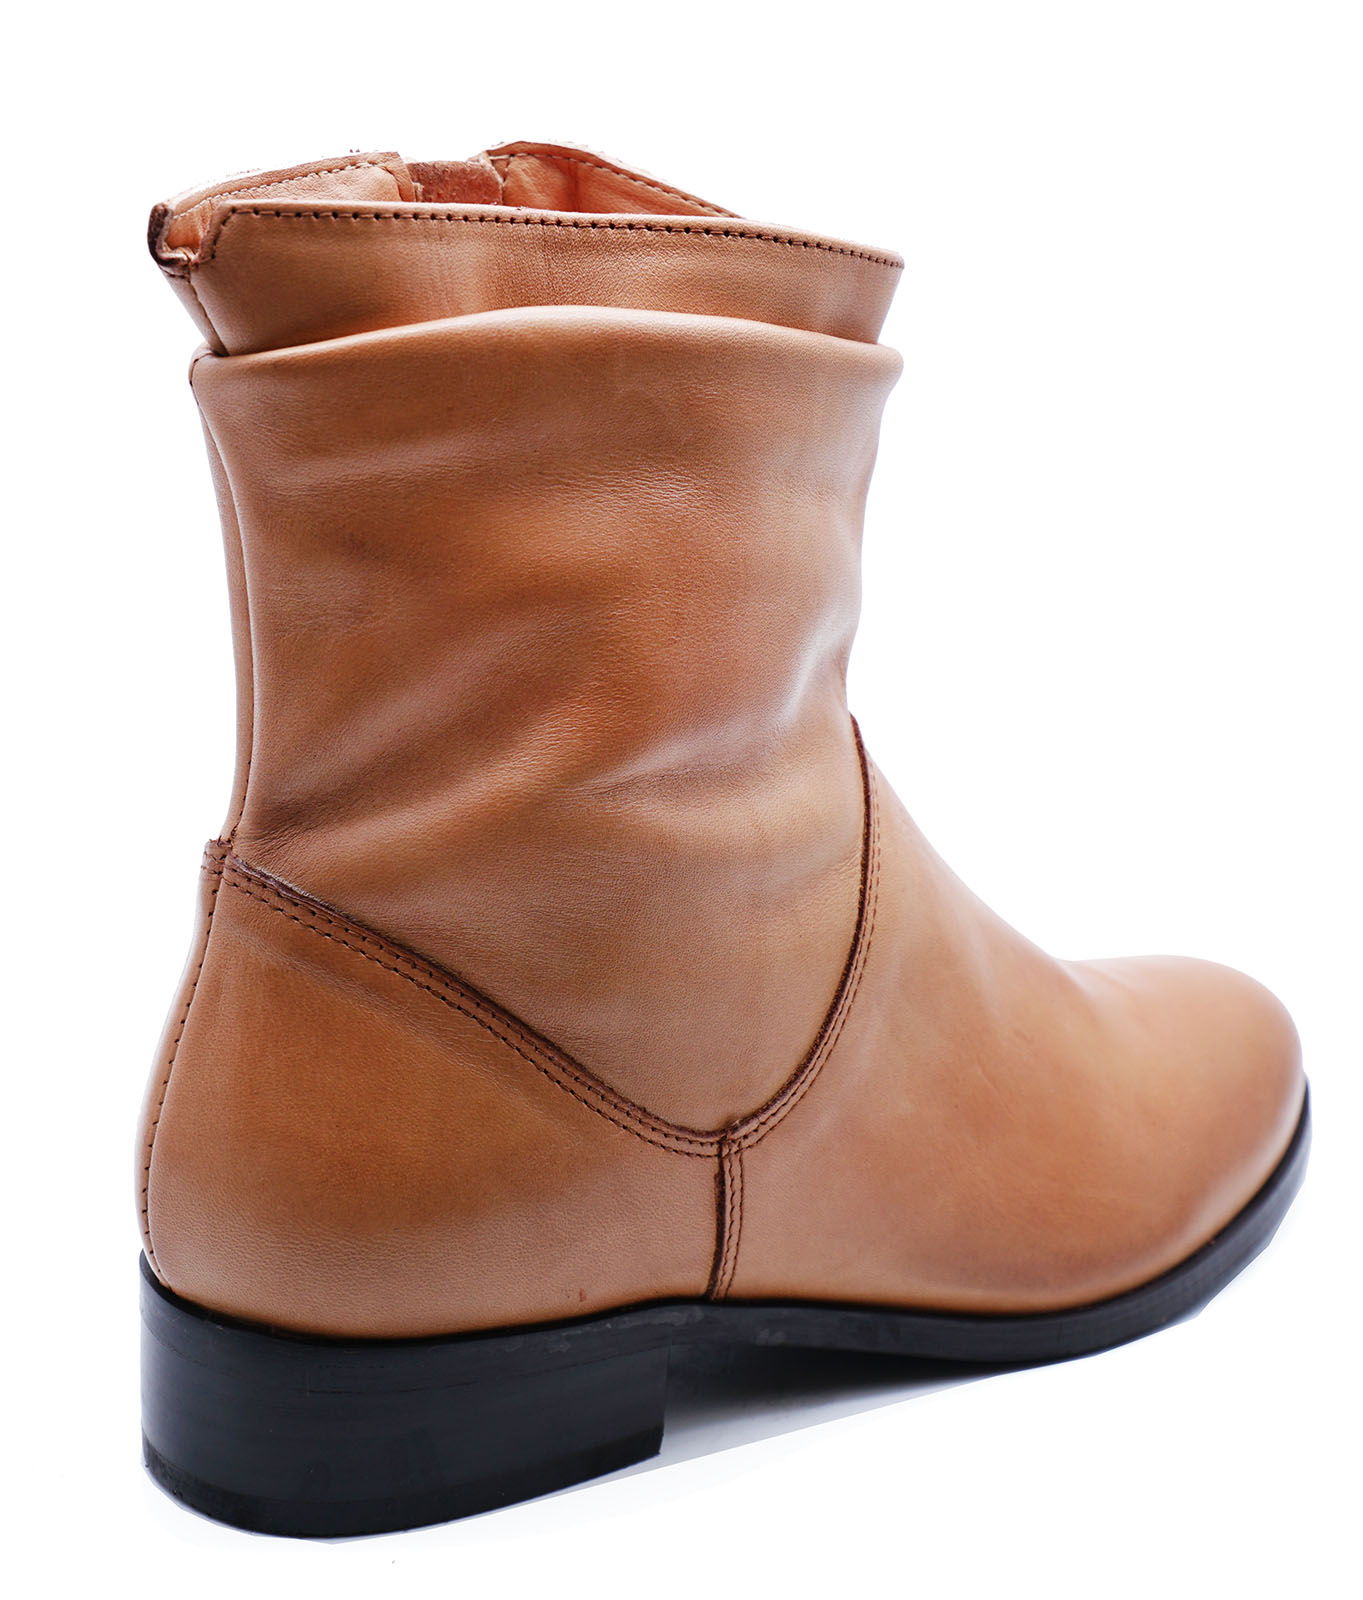 LADIES-FLAT-GENUINE-LEATHER-TAN-ZIP-UP-ANKLE-CALF-BOOTS-COMFY-SHOES-SIZES-2-9 thumbnail 29